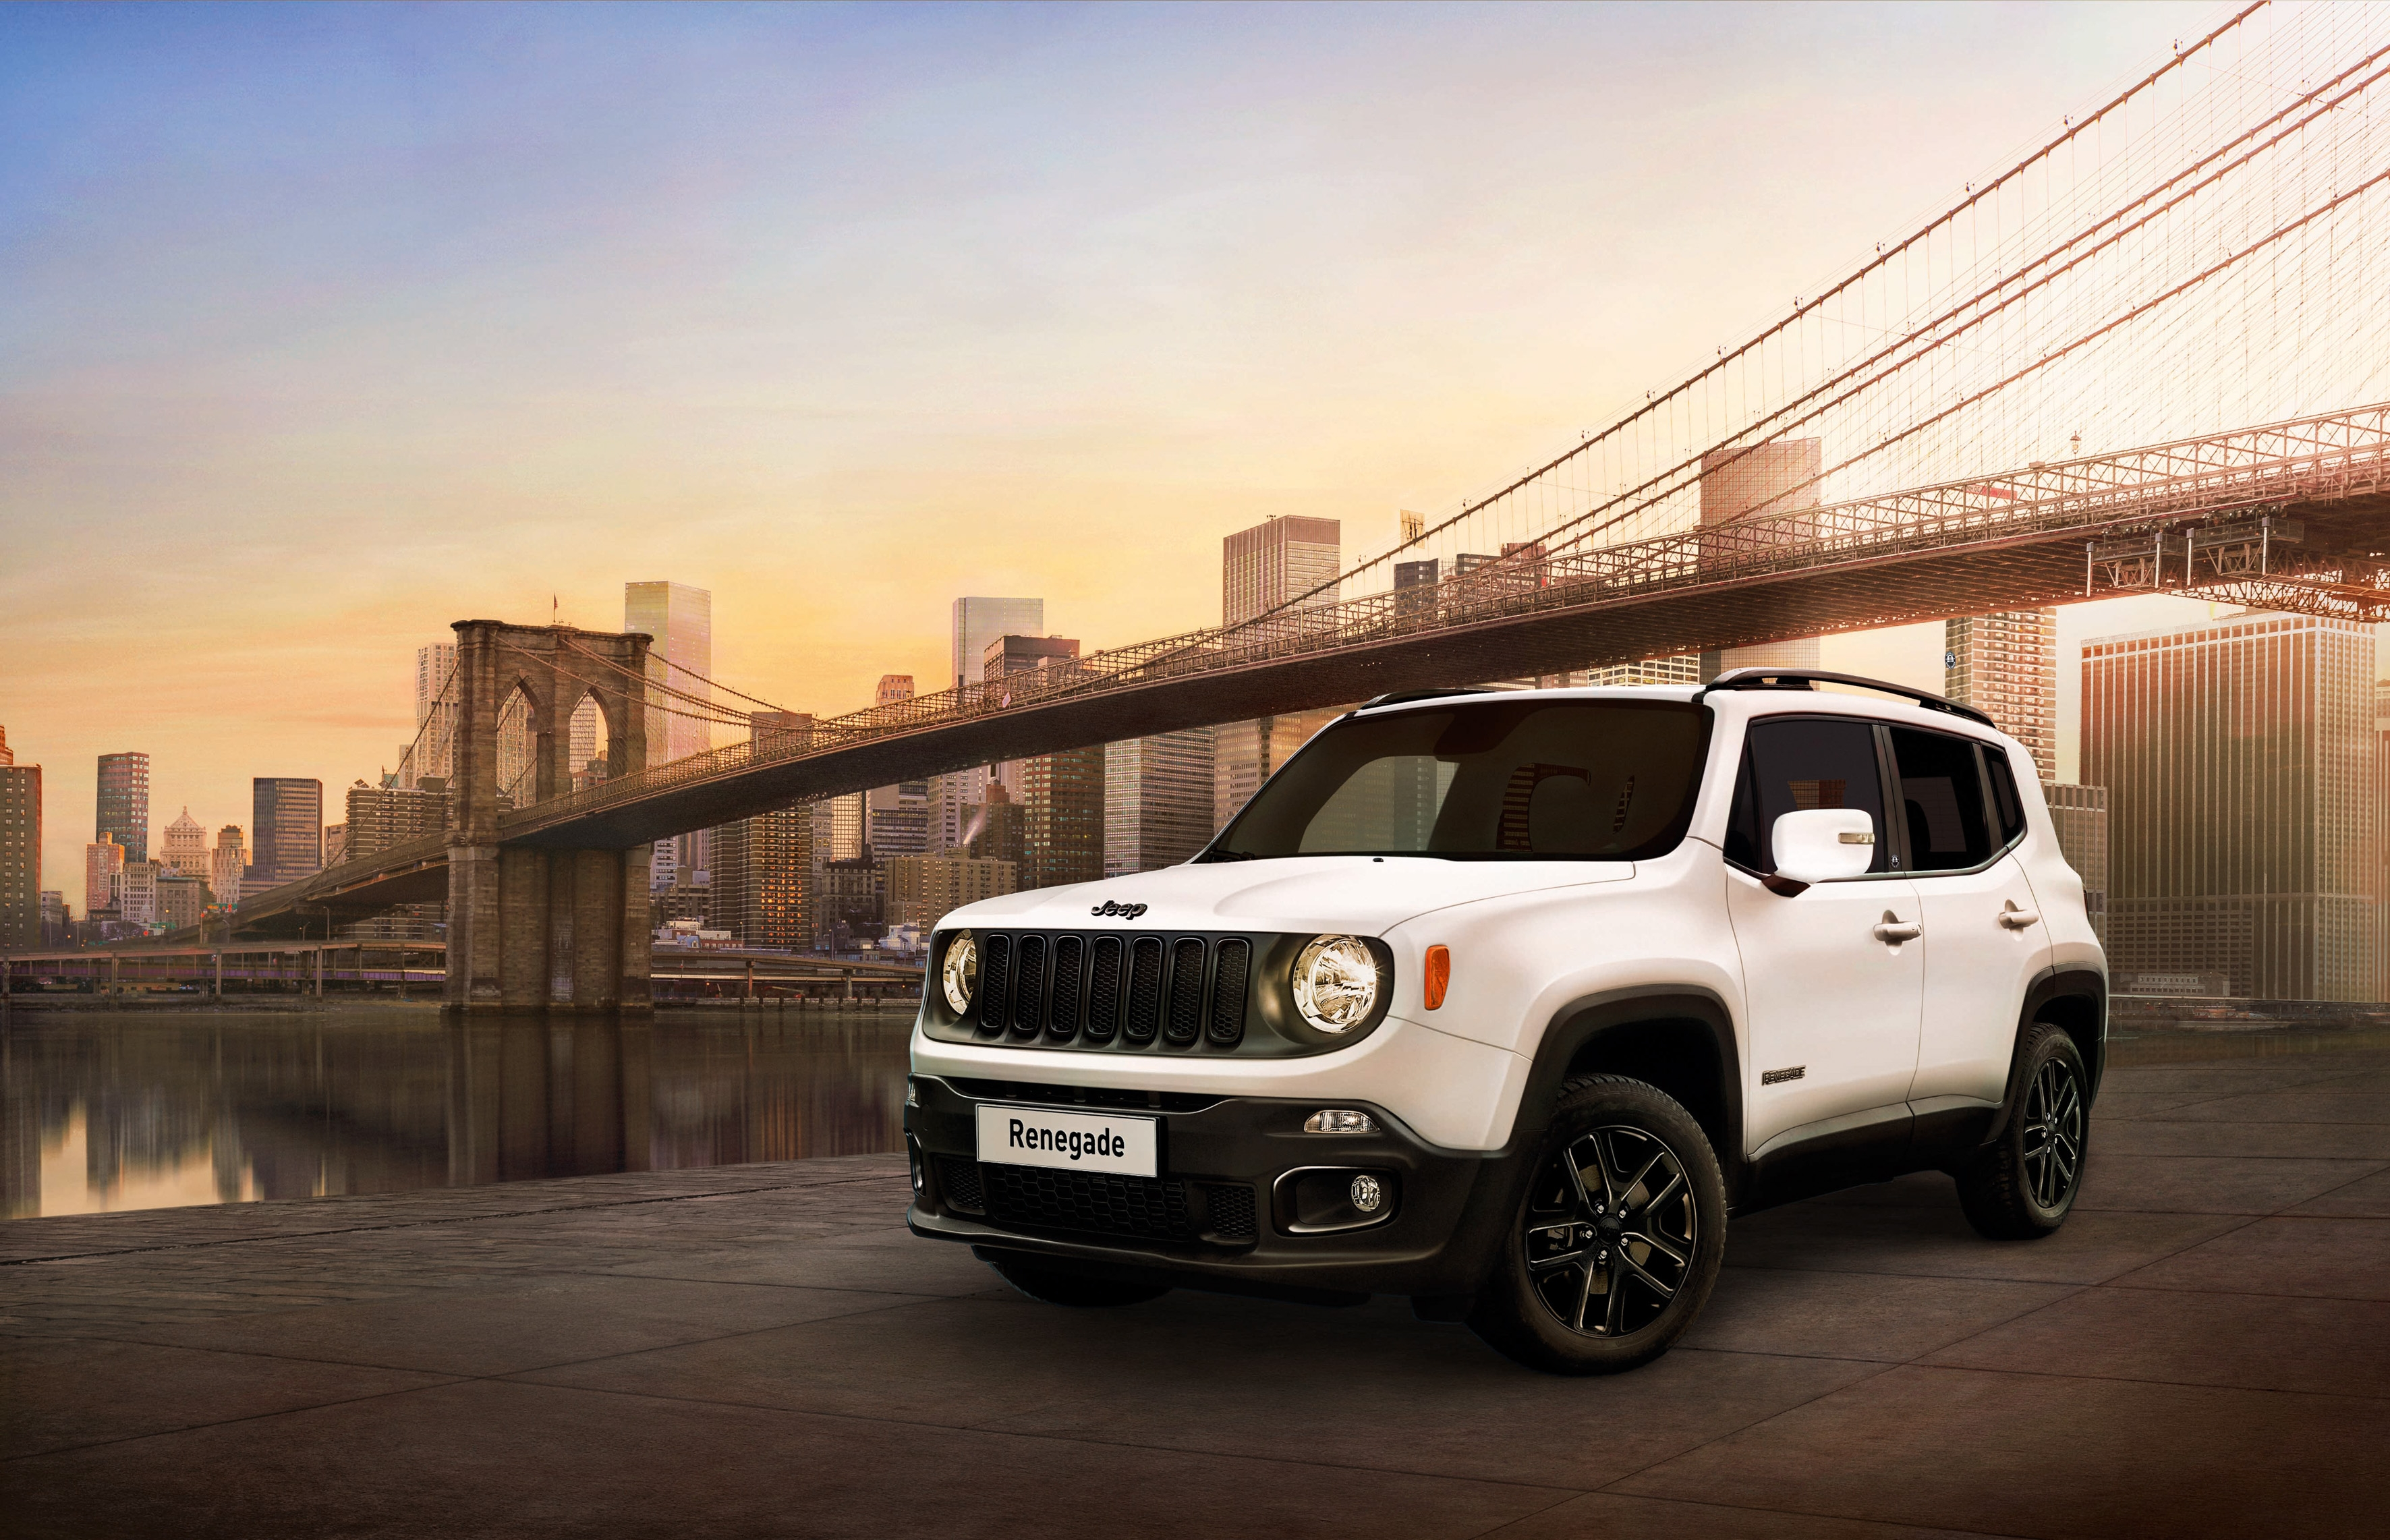 S0-jeep-serie-speciale-renegade-brooklyn-edition-uniquement-pour-la-france-372784.jpg